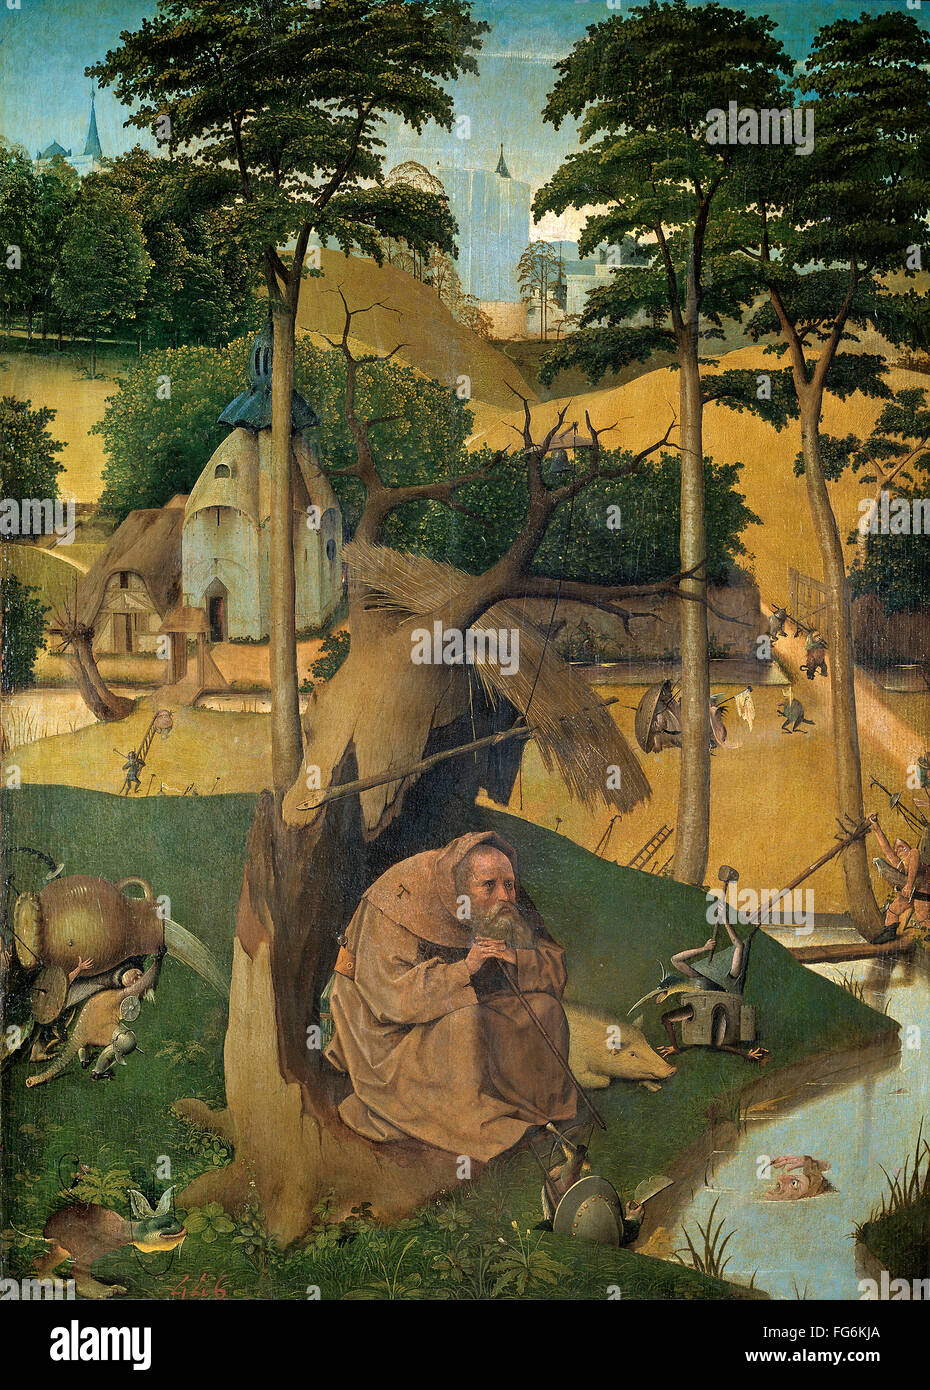 The Temptation of St Anthony by Hieronymus Bosch - Stock Image